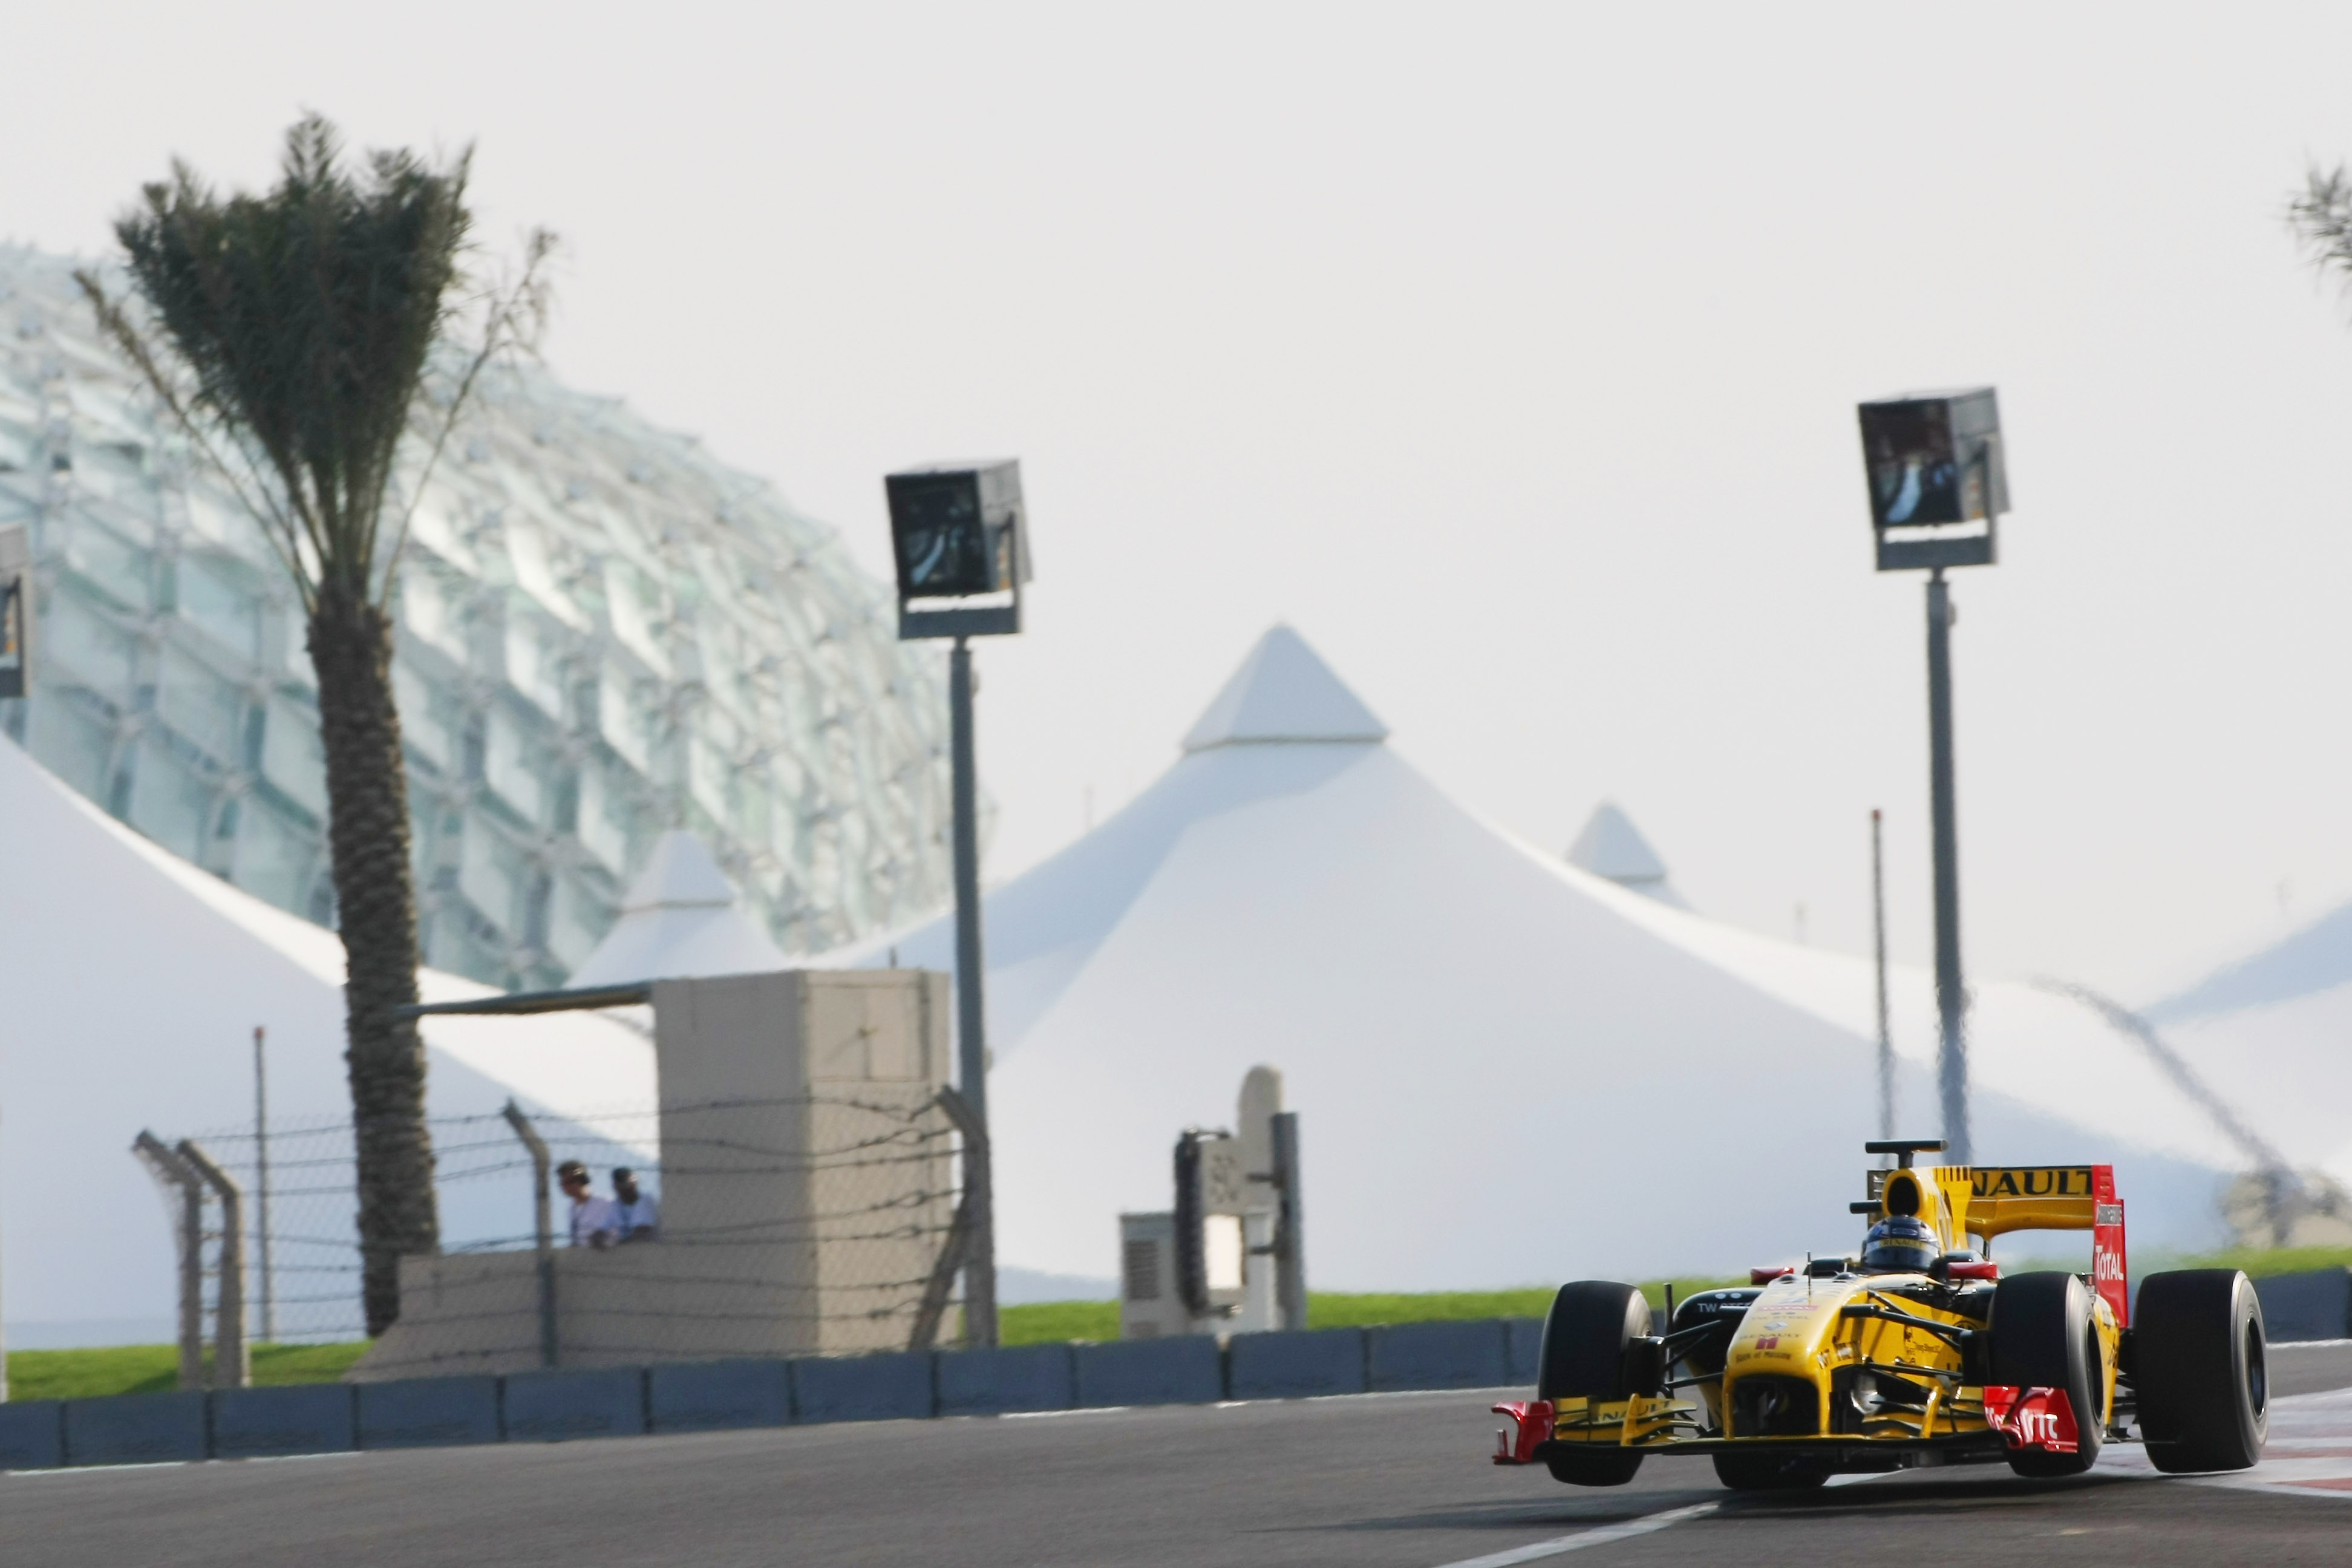 ABU DHABI, UNITED ARAB EMIRATES - NOVEMBER 16: Mikhail Aleshin of Russia and Renault F1 Team in action during the Young Driver Testing at the Yas Marina Circuit on November 16, 2010 in Abu Dhabi, United Arab Emirates. (Photo by Andrew Hone/Getty Images)